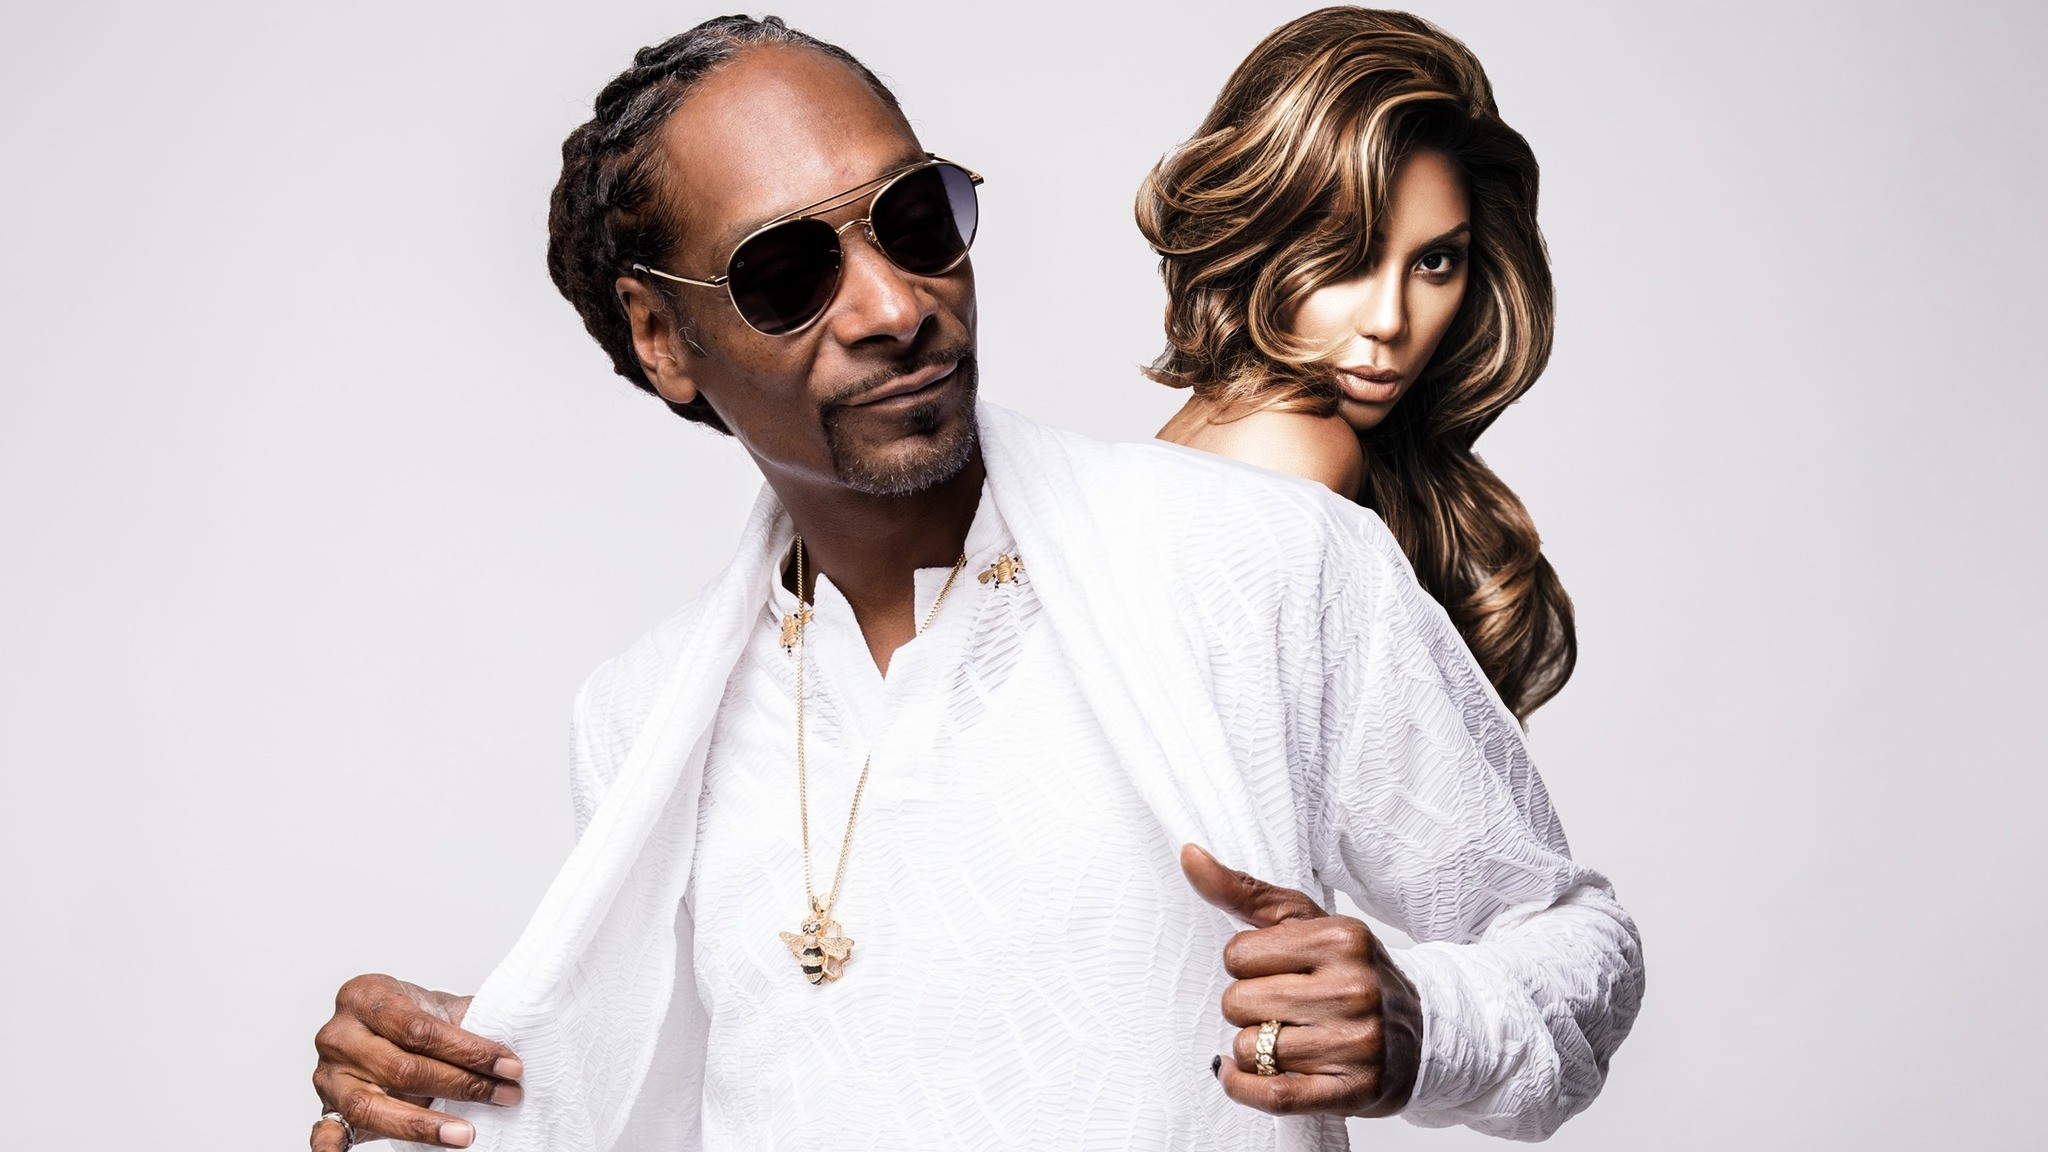 """tamar-braxton-has-the-best-time-with-her-brother-snoop-dogg-see-their-pics-together"""